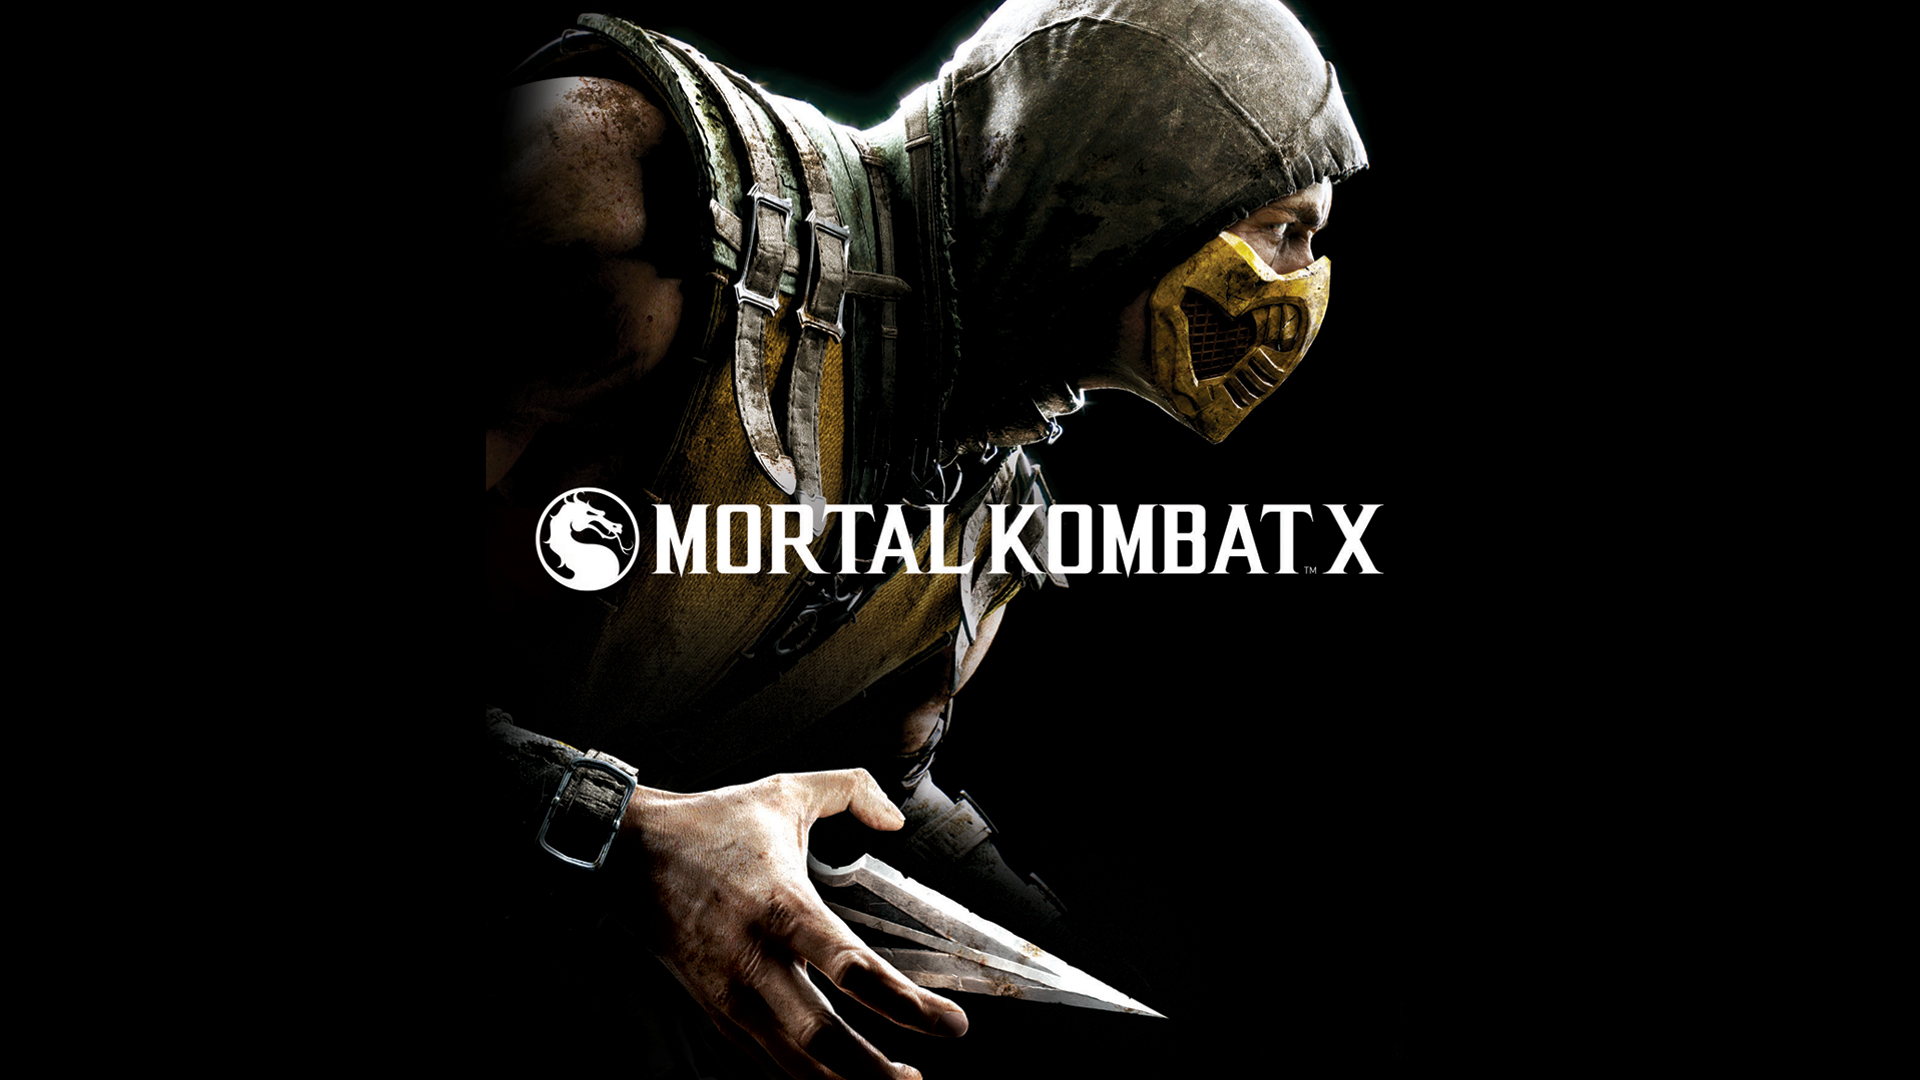 Mortal Kombat Scorpion X PC Android iPhone and iPad Wallpapers 1920x1080